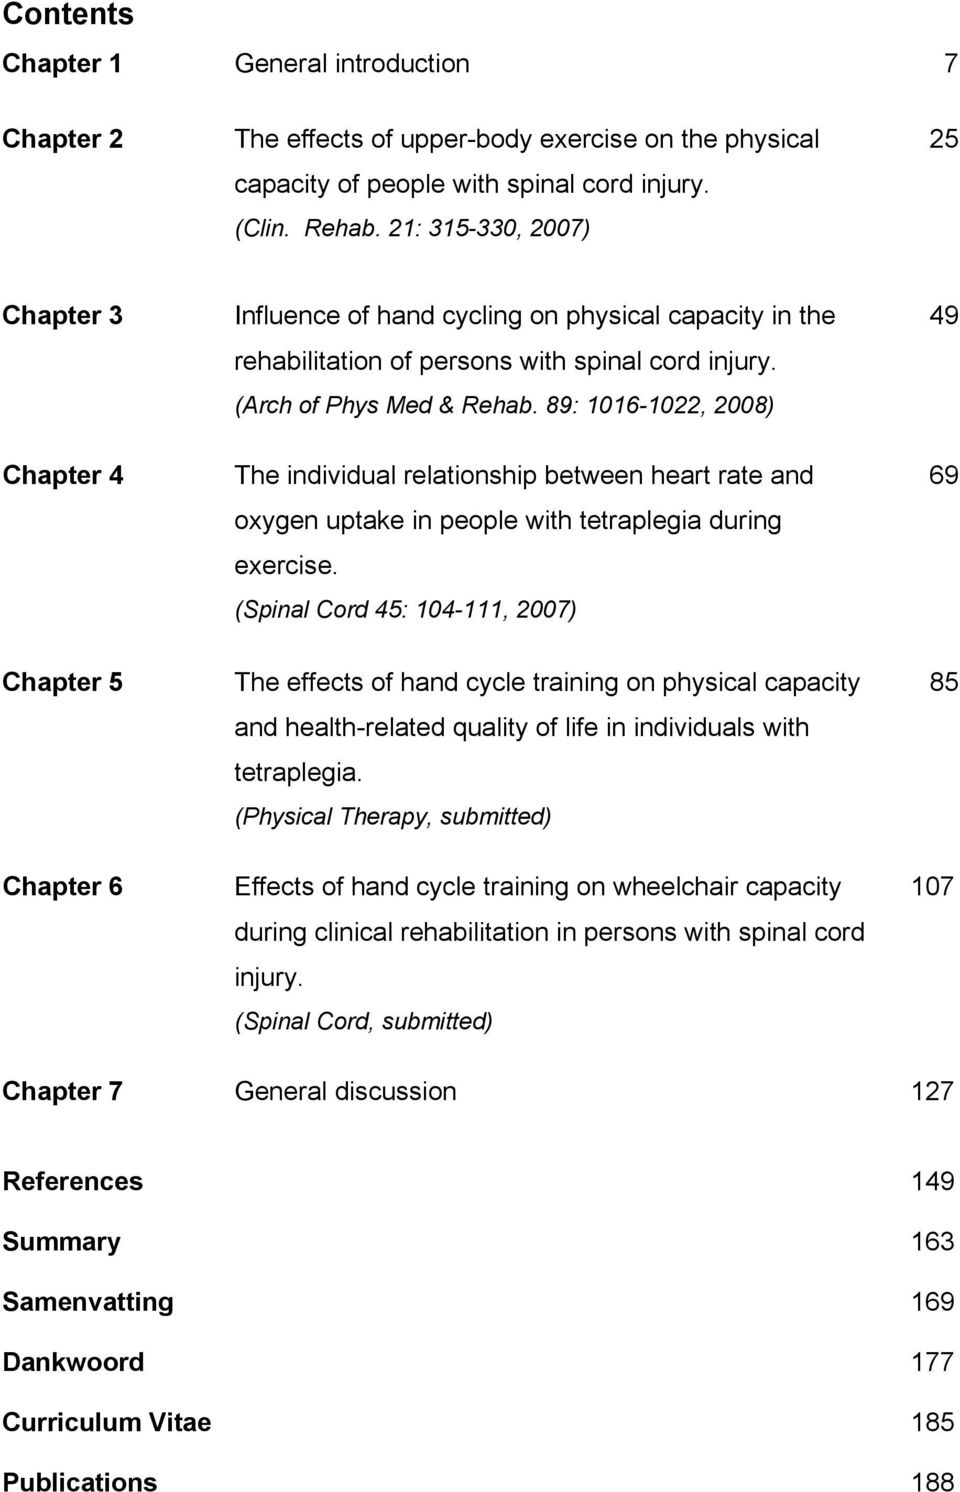 89: 1016-1022, 2008) Chapter 4 The individual relationship between heart rate and 69 oxygen uptake in people with tetraplegia during exercise.